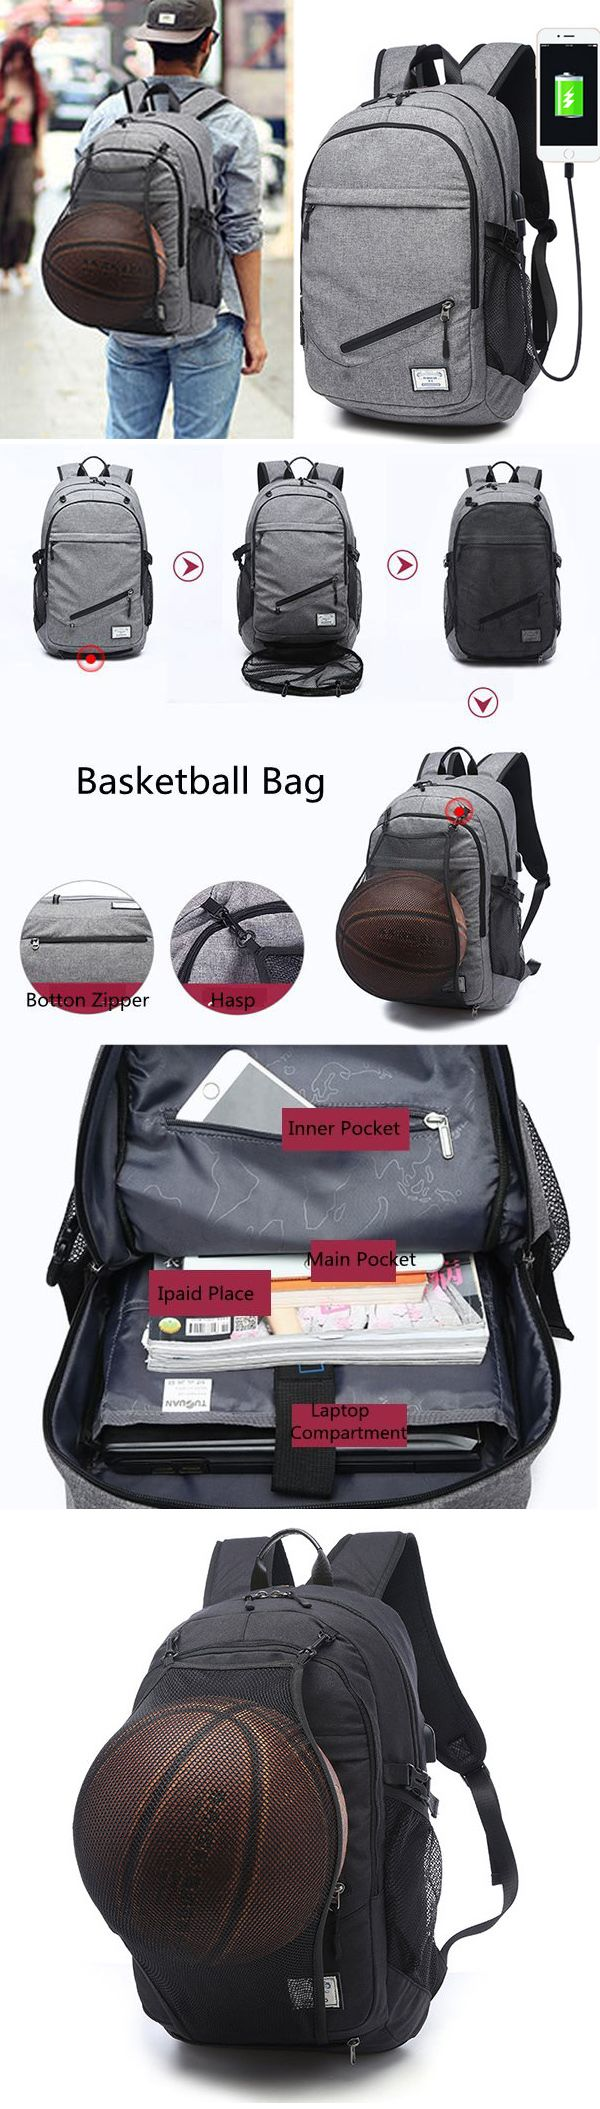 Outdoor Travel Canvas Backpack Laptop Bag Basketball Bag With USB Socket is  high-quality. Shop on NewChic and buy the best mens backpack for yourself. 3c8ab05232acf